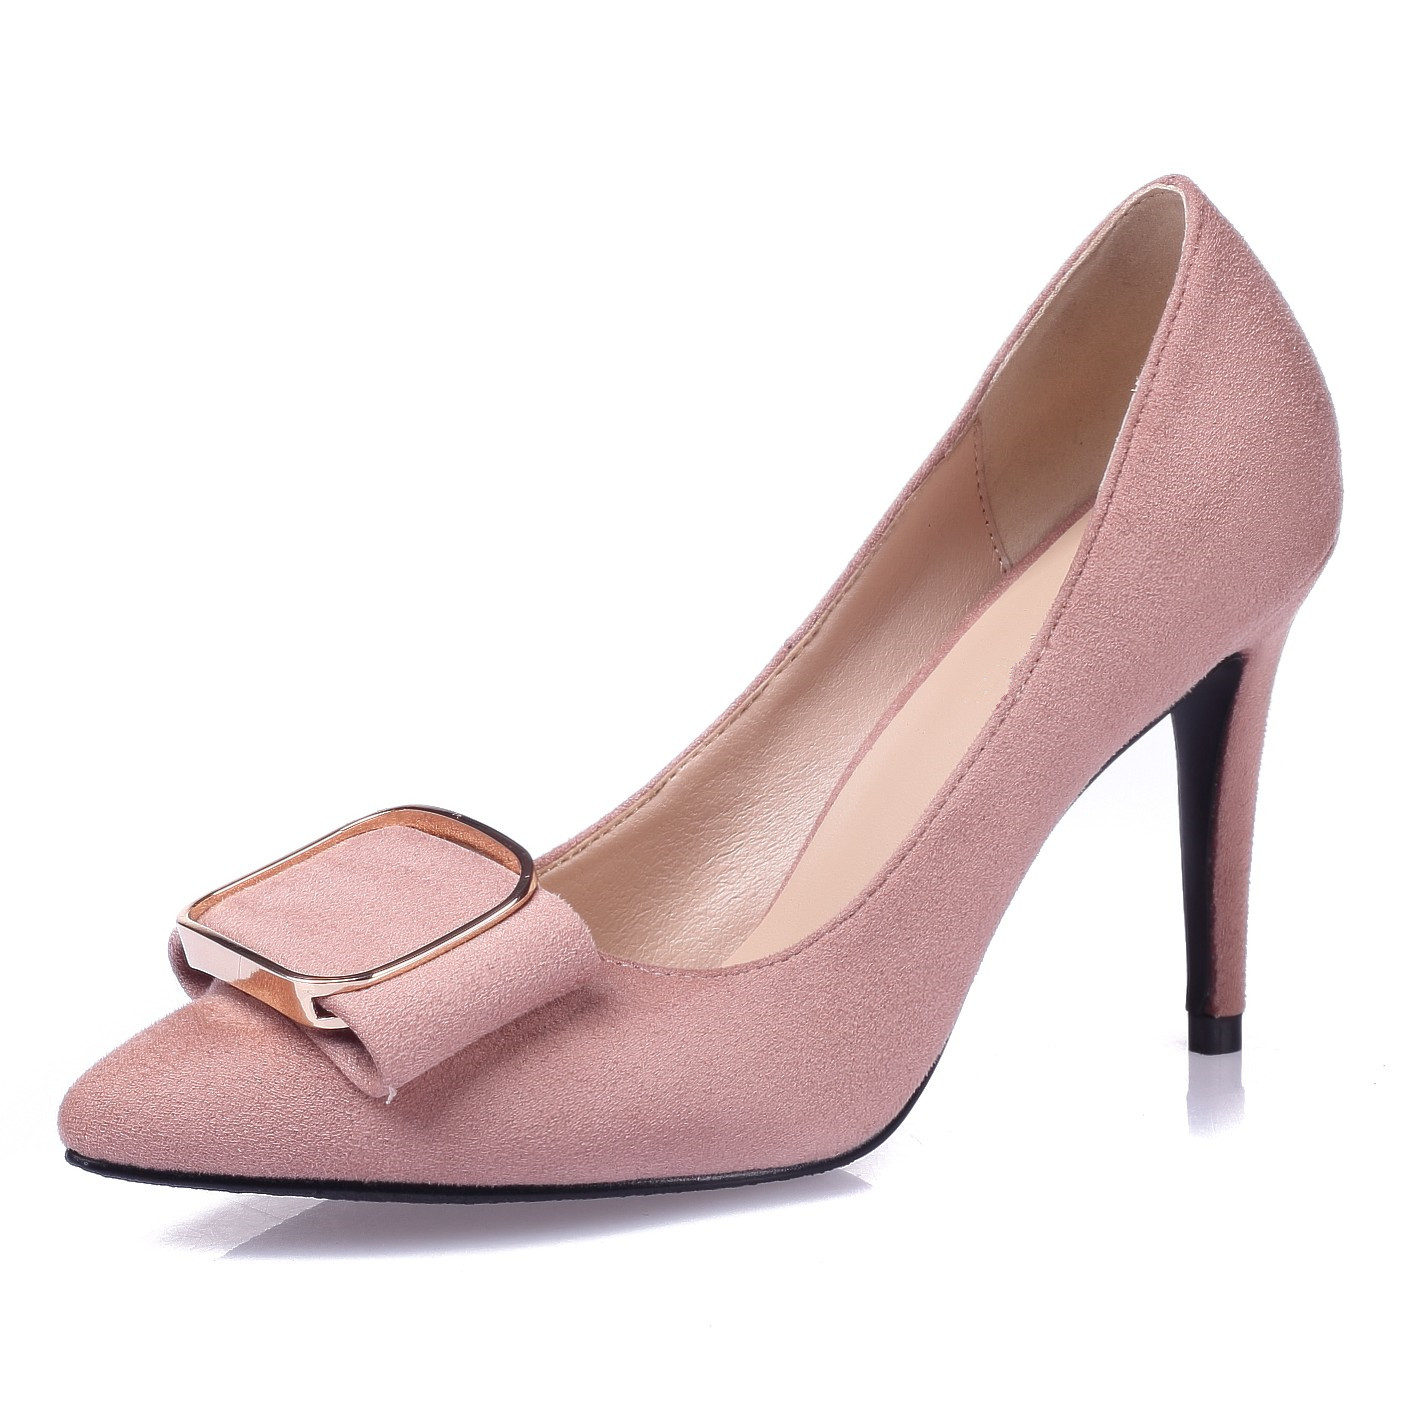 New Woman Pumps Wedding Shoes Fashion Sexy Classic Red High Heels Pointed Toe Genuine Leather Sweet Party Dress Shoes SMYBK-A12 new women patent leather high heels shoes wine red gray sexy pointed toe shoe for wedding party office career pumps smybk 020